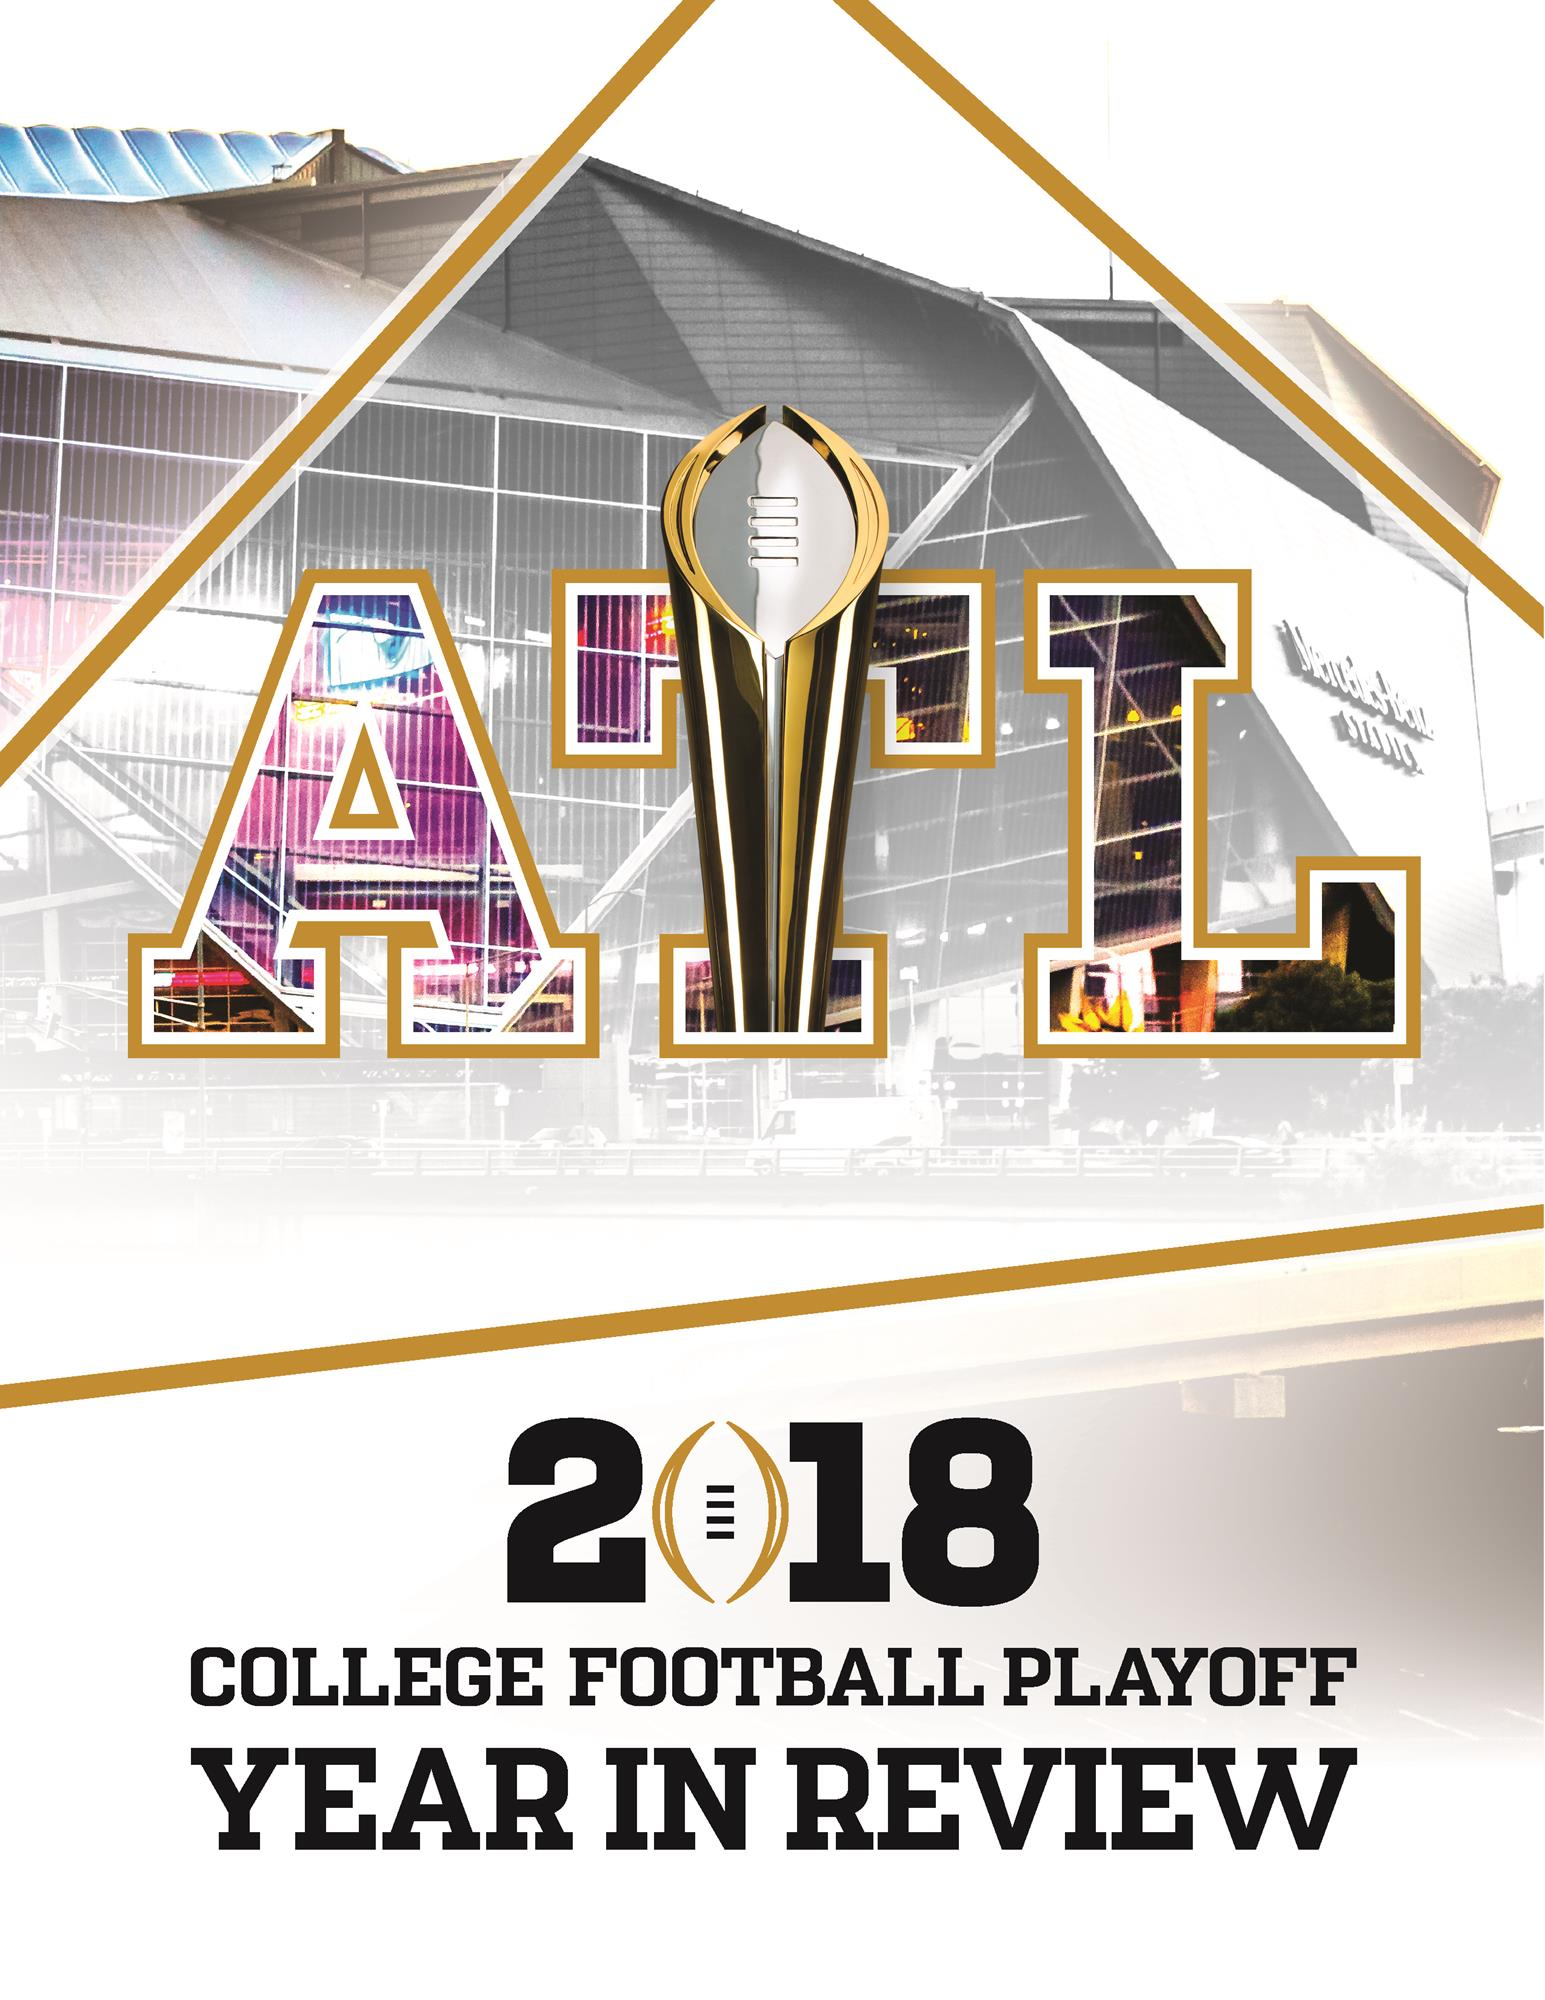 2018 Year In Review College Football Playoff